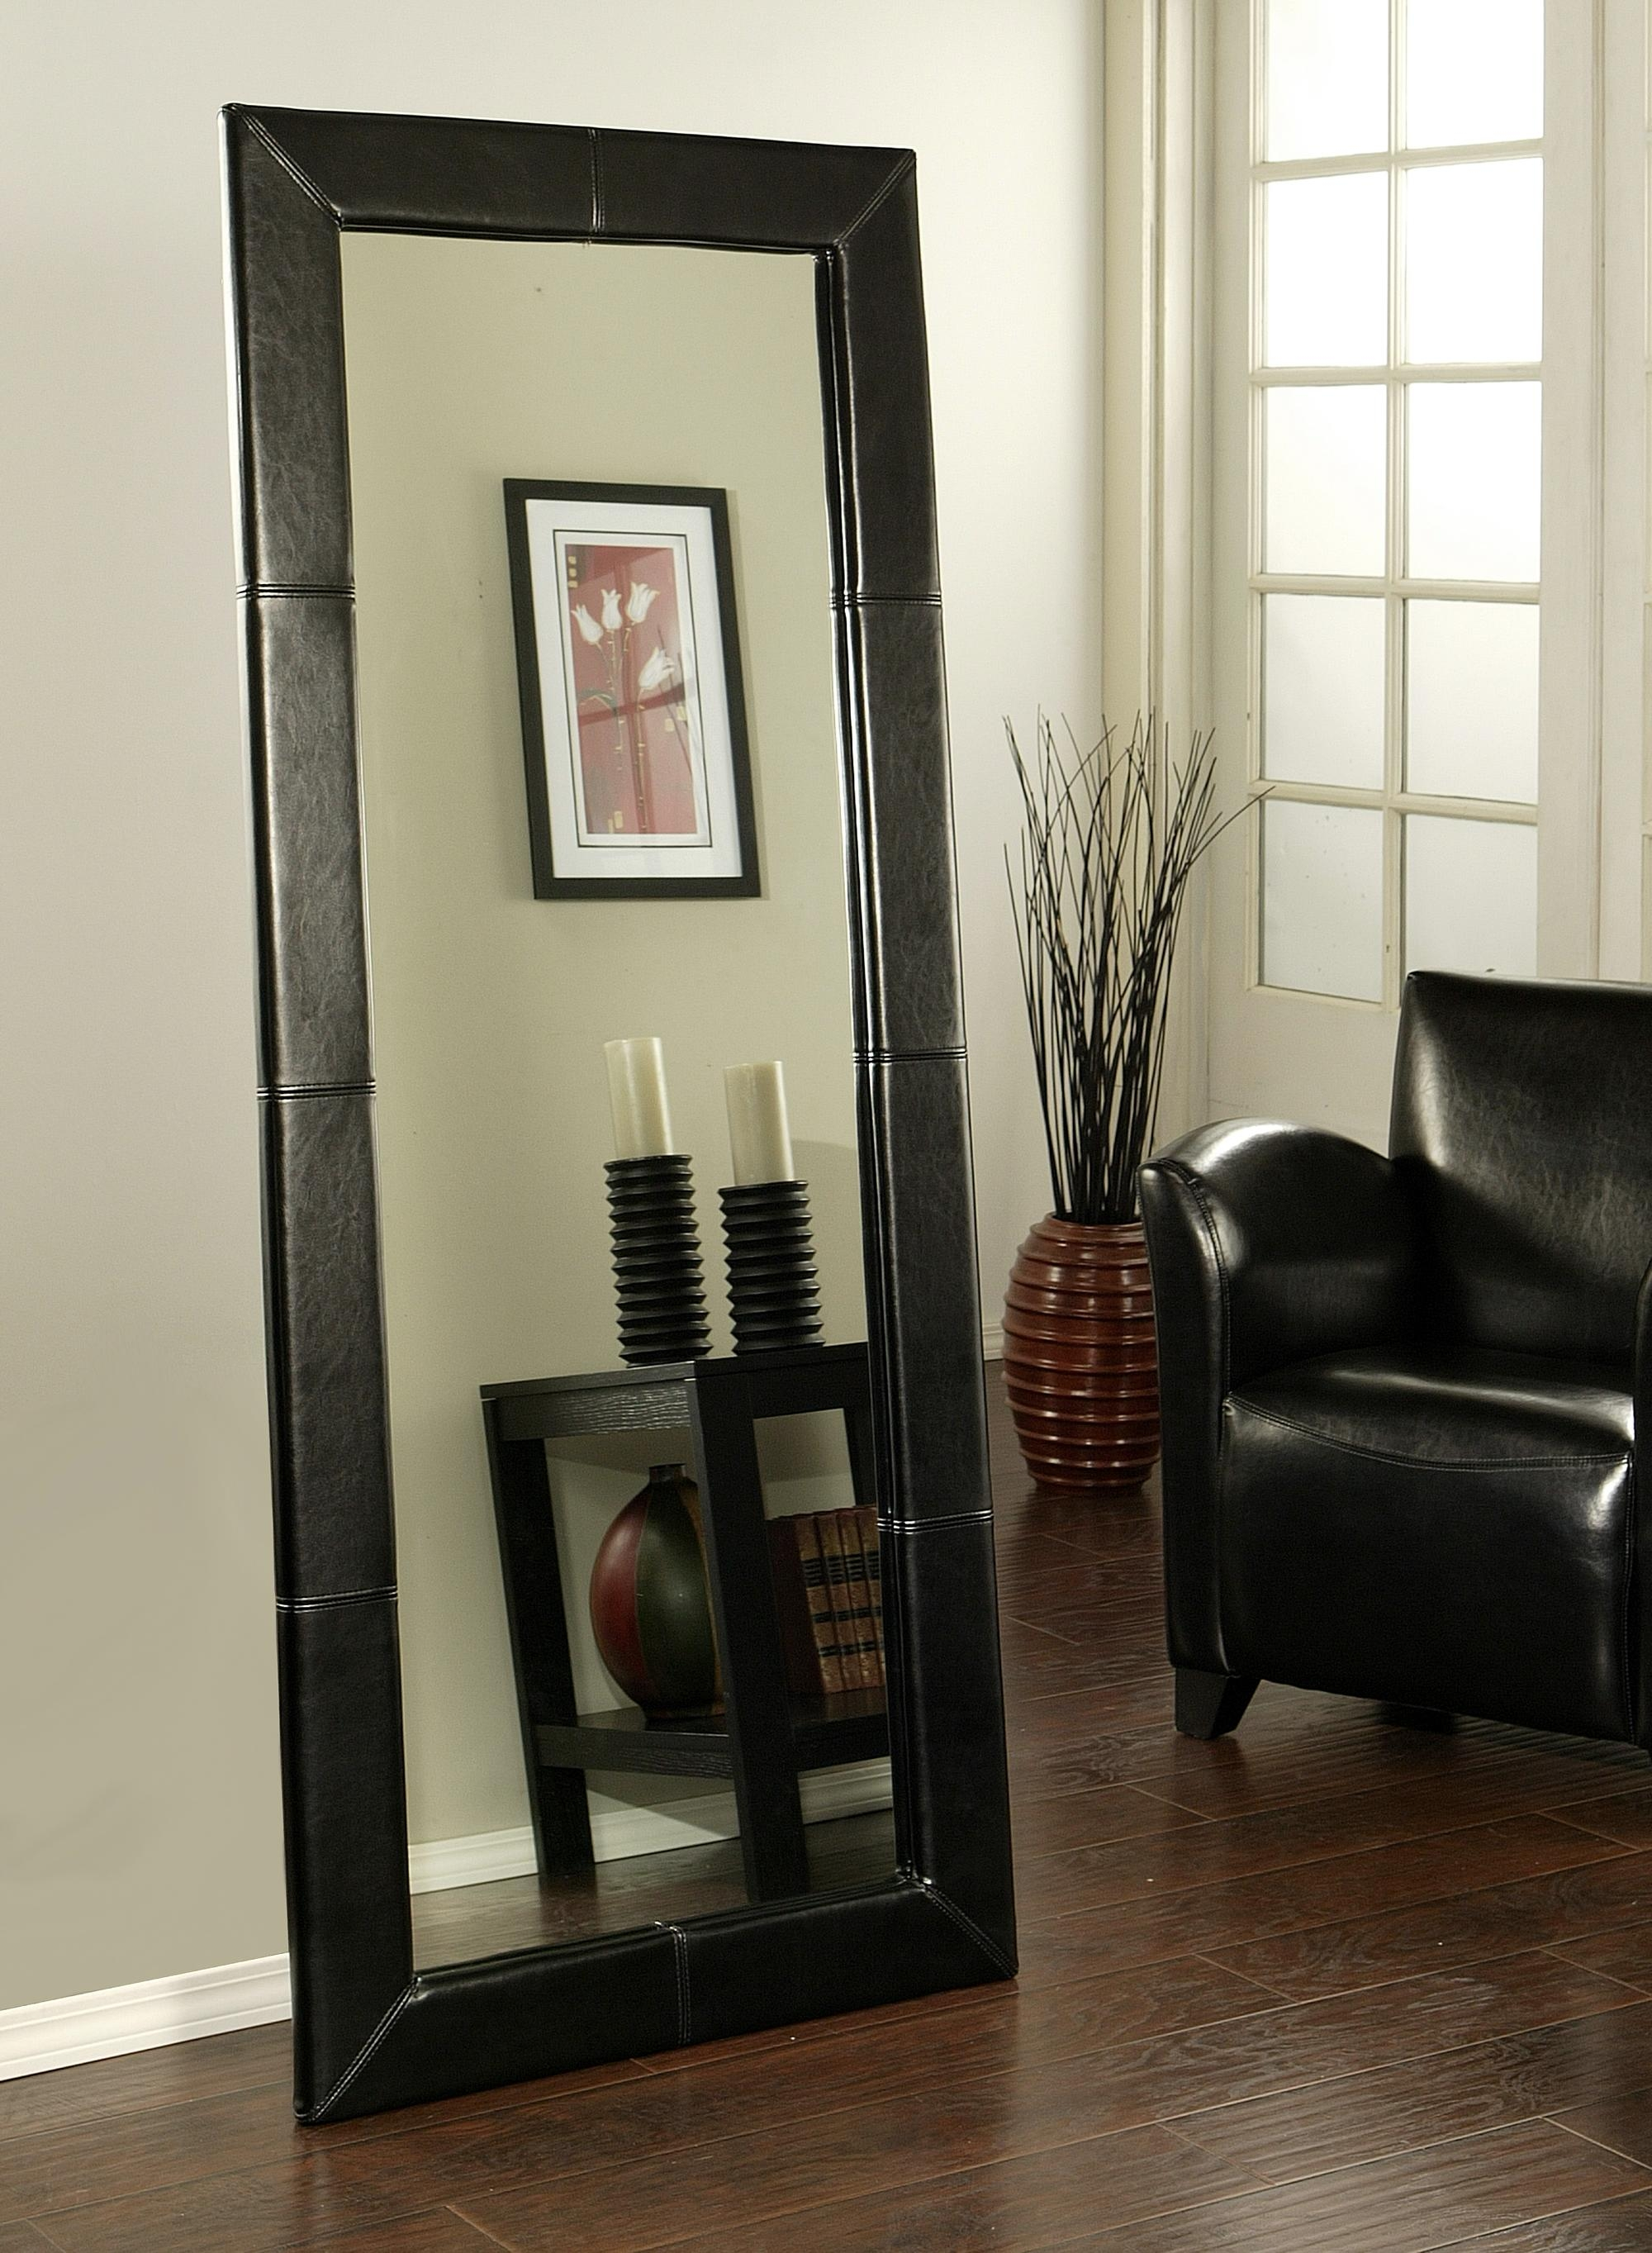 Interior Exclusive Hallway Mirror Black Leather Frame Charming For Black Leather Framed Mirror (Image 5 of 15)